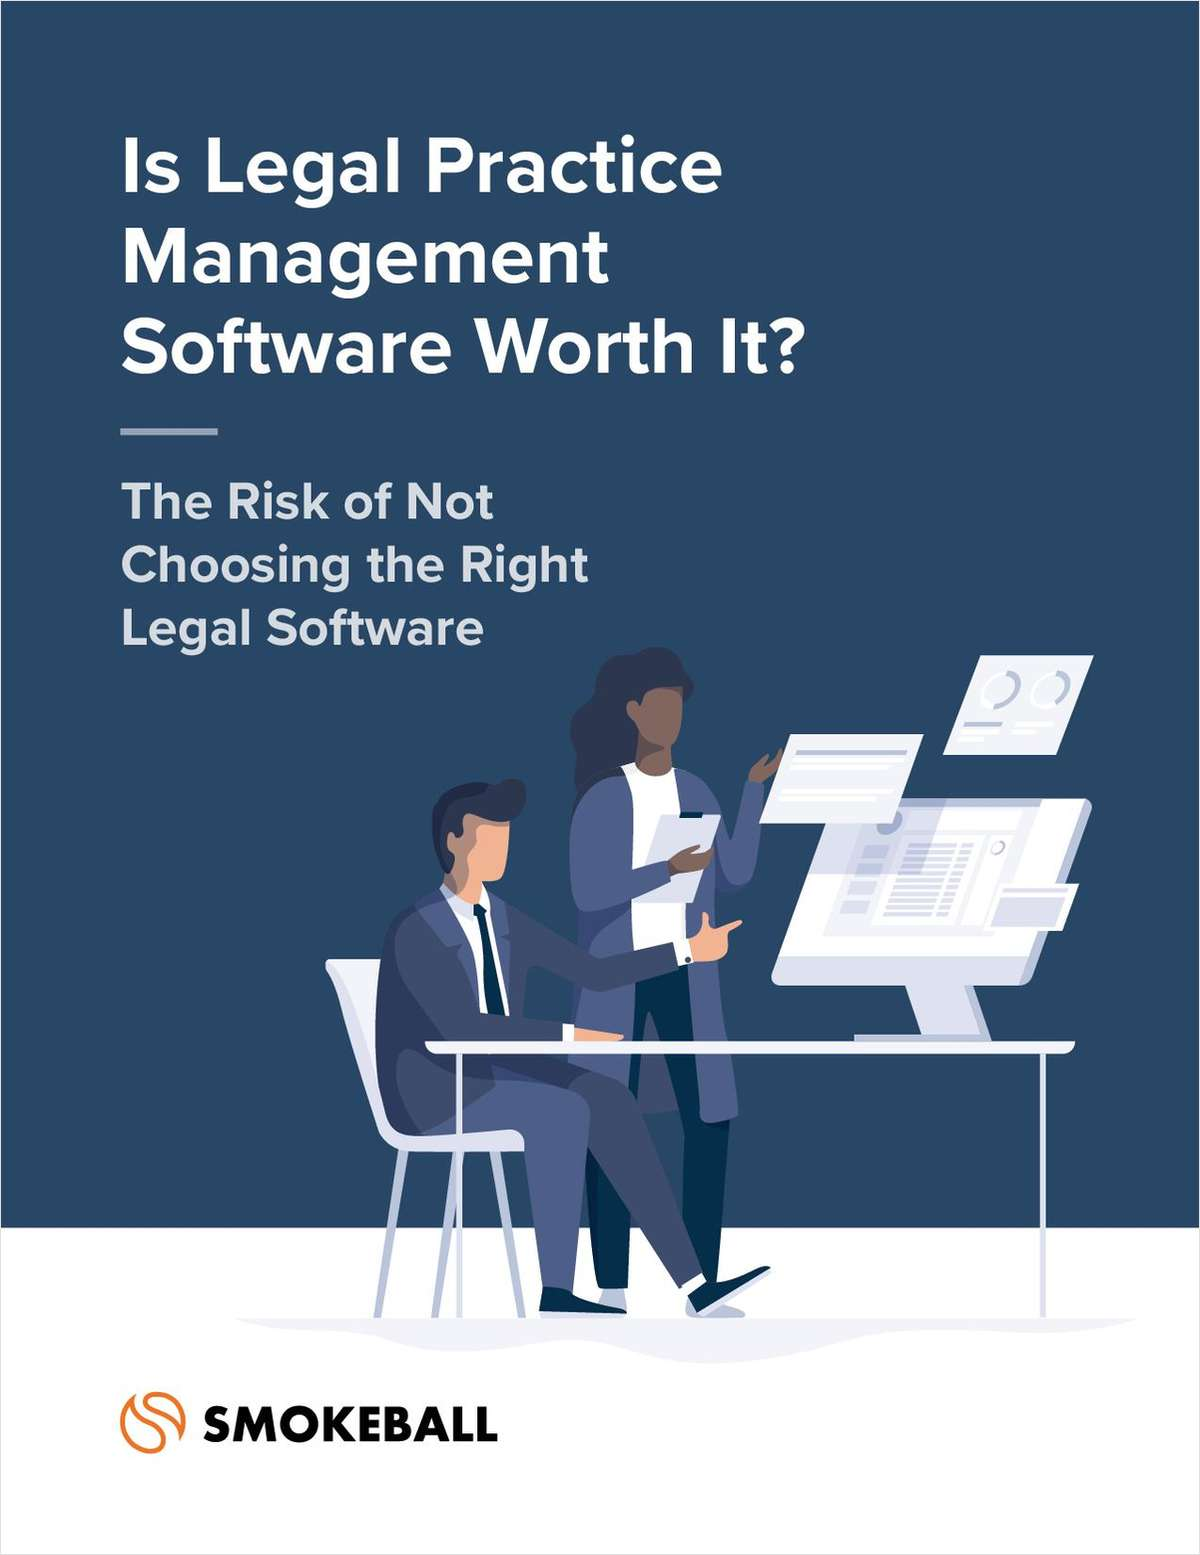 Attorneys understand why they need to adopt legal technology like legal practice management software (LPMS), but many of them are still asking themselves: is LPMS really worth it? Download this guide which helps small firms answer that question.